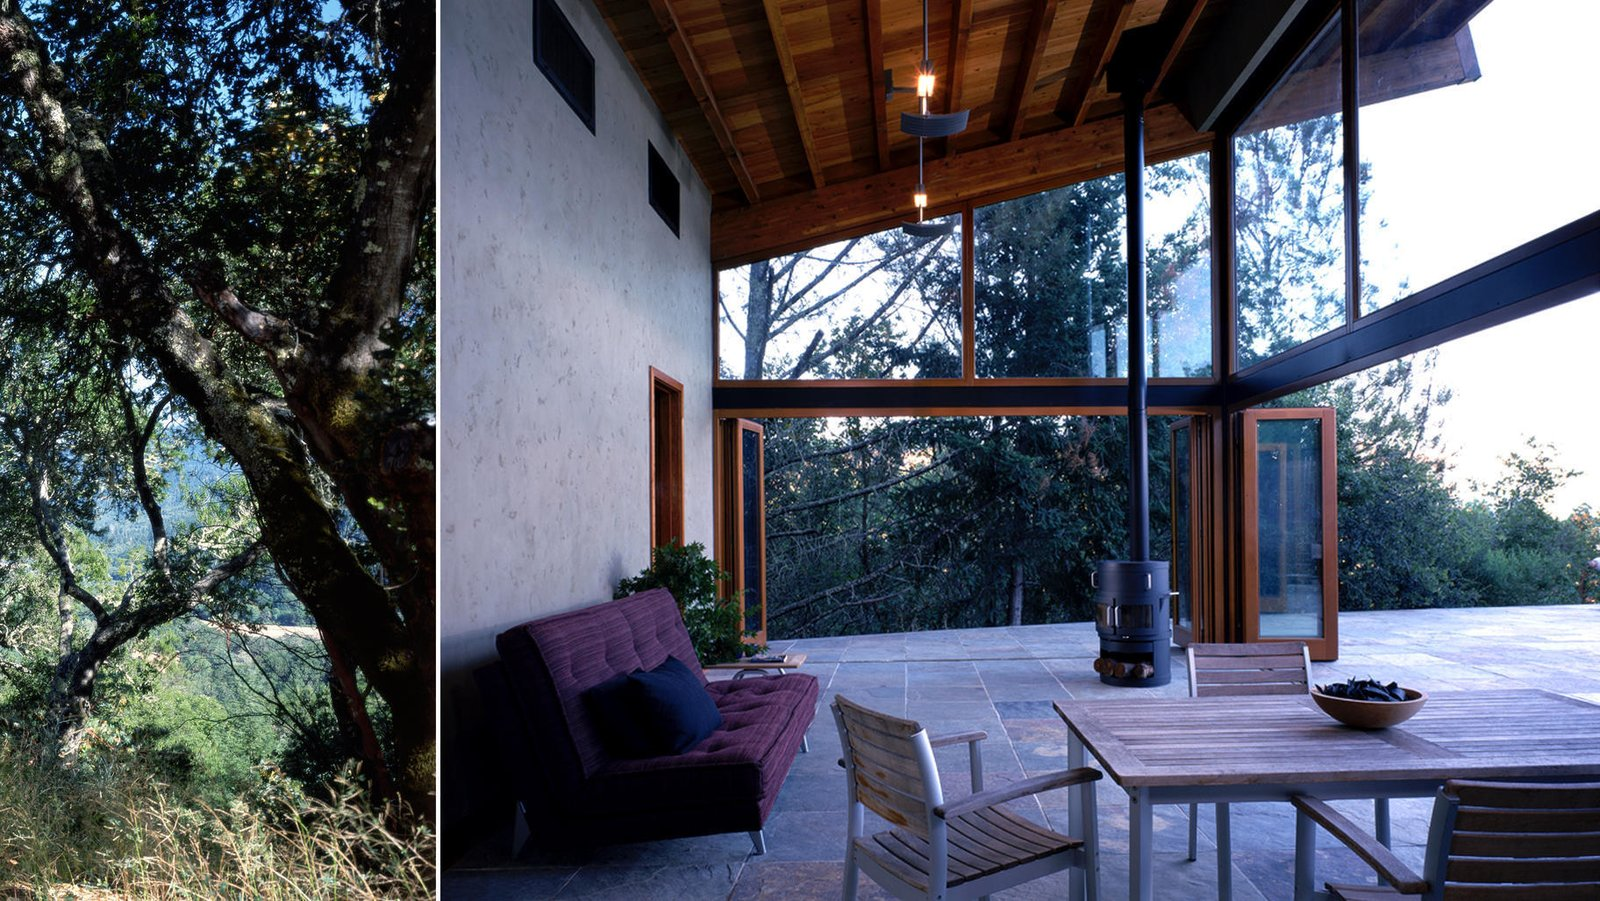 #poolhouse #calistoga #exterior #smallspaces #cantileveredroof #cantilevered #roof